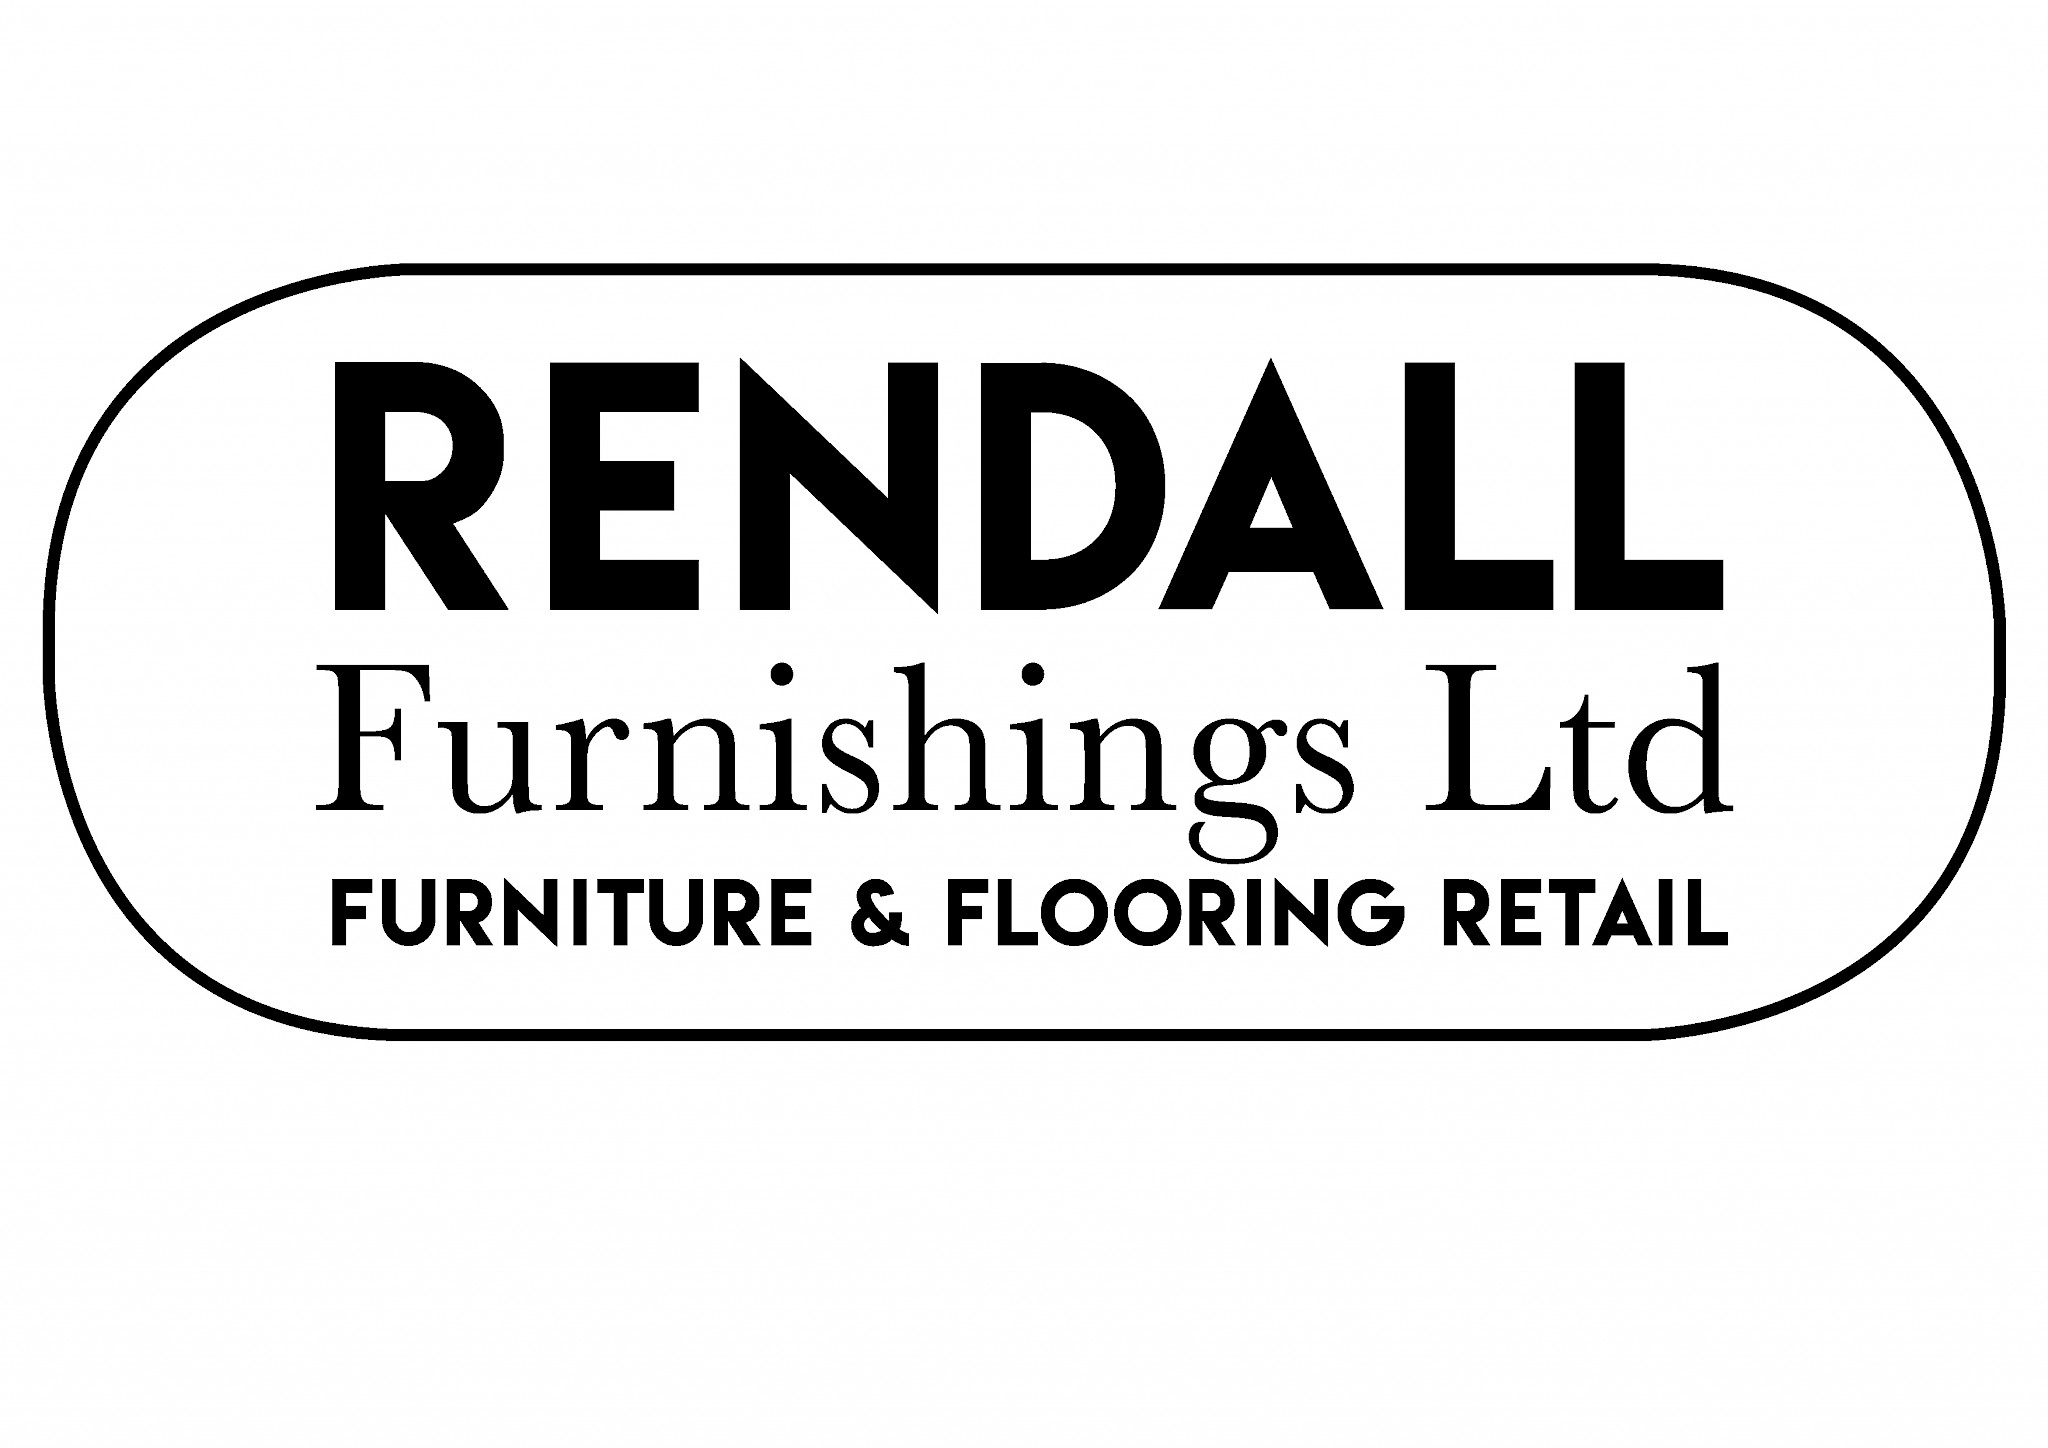 Rendall Furnishings Ltd Logo